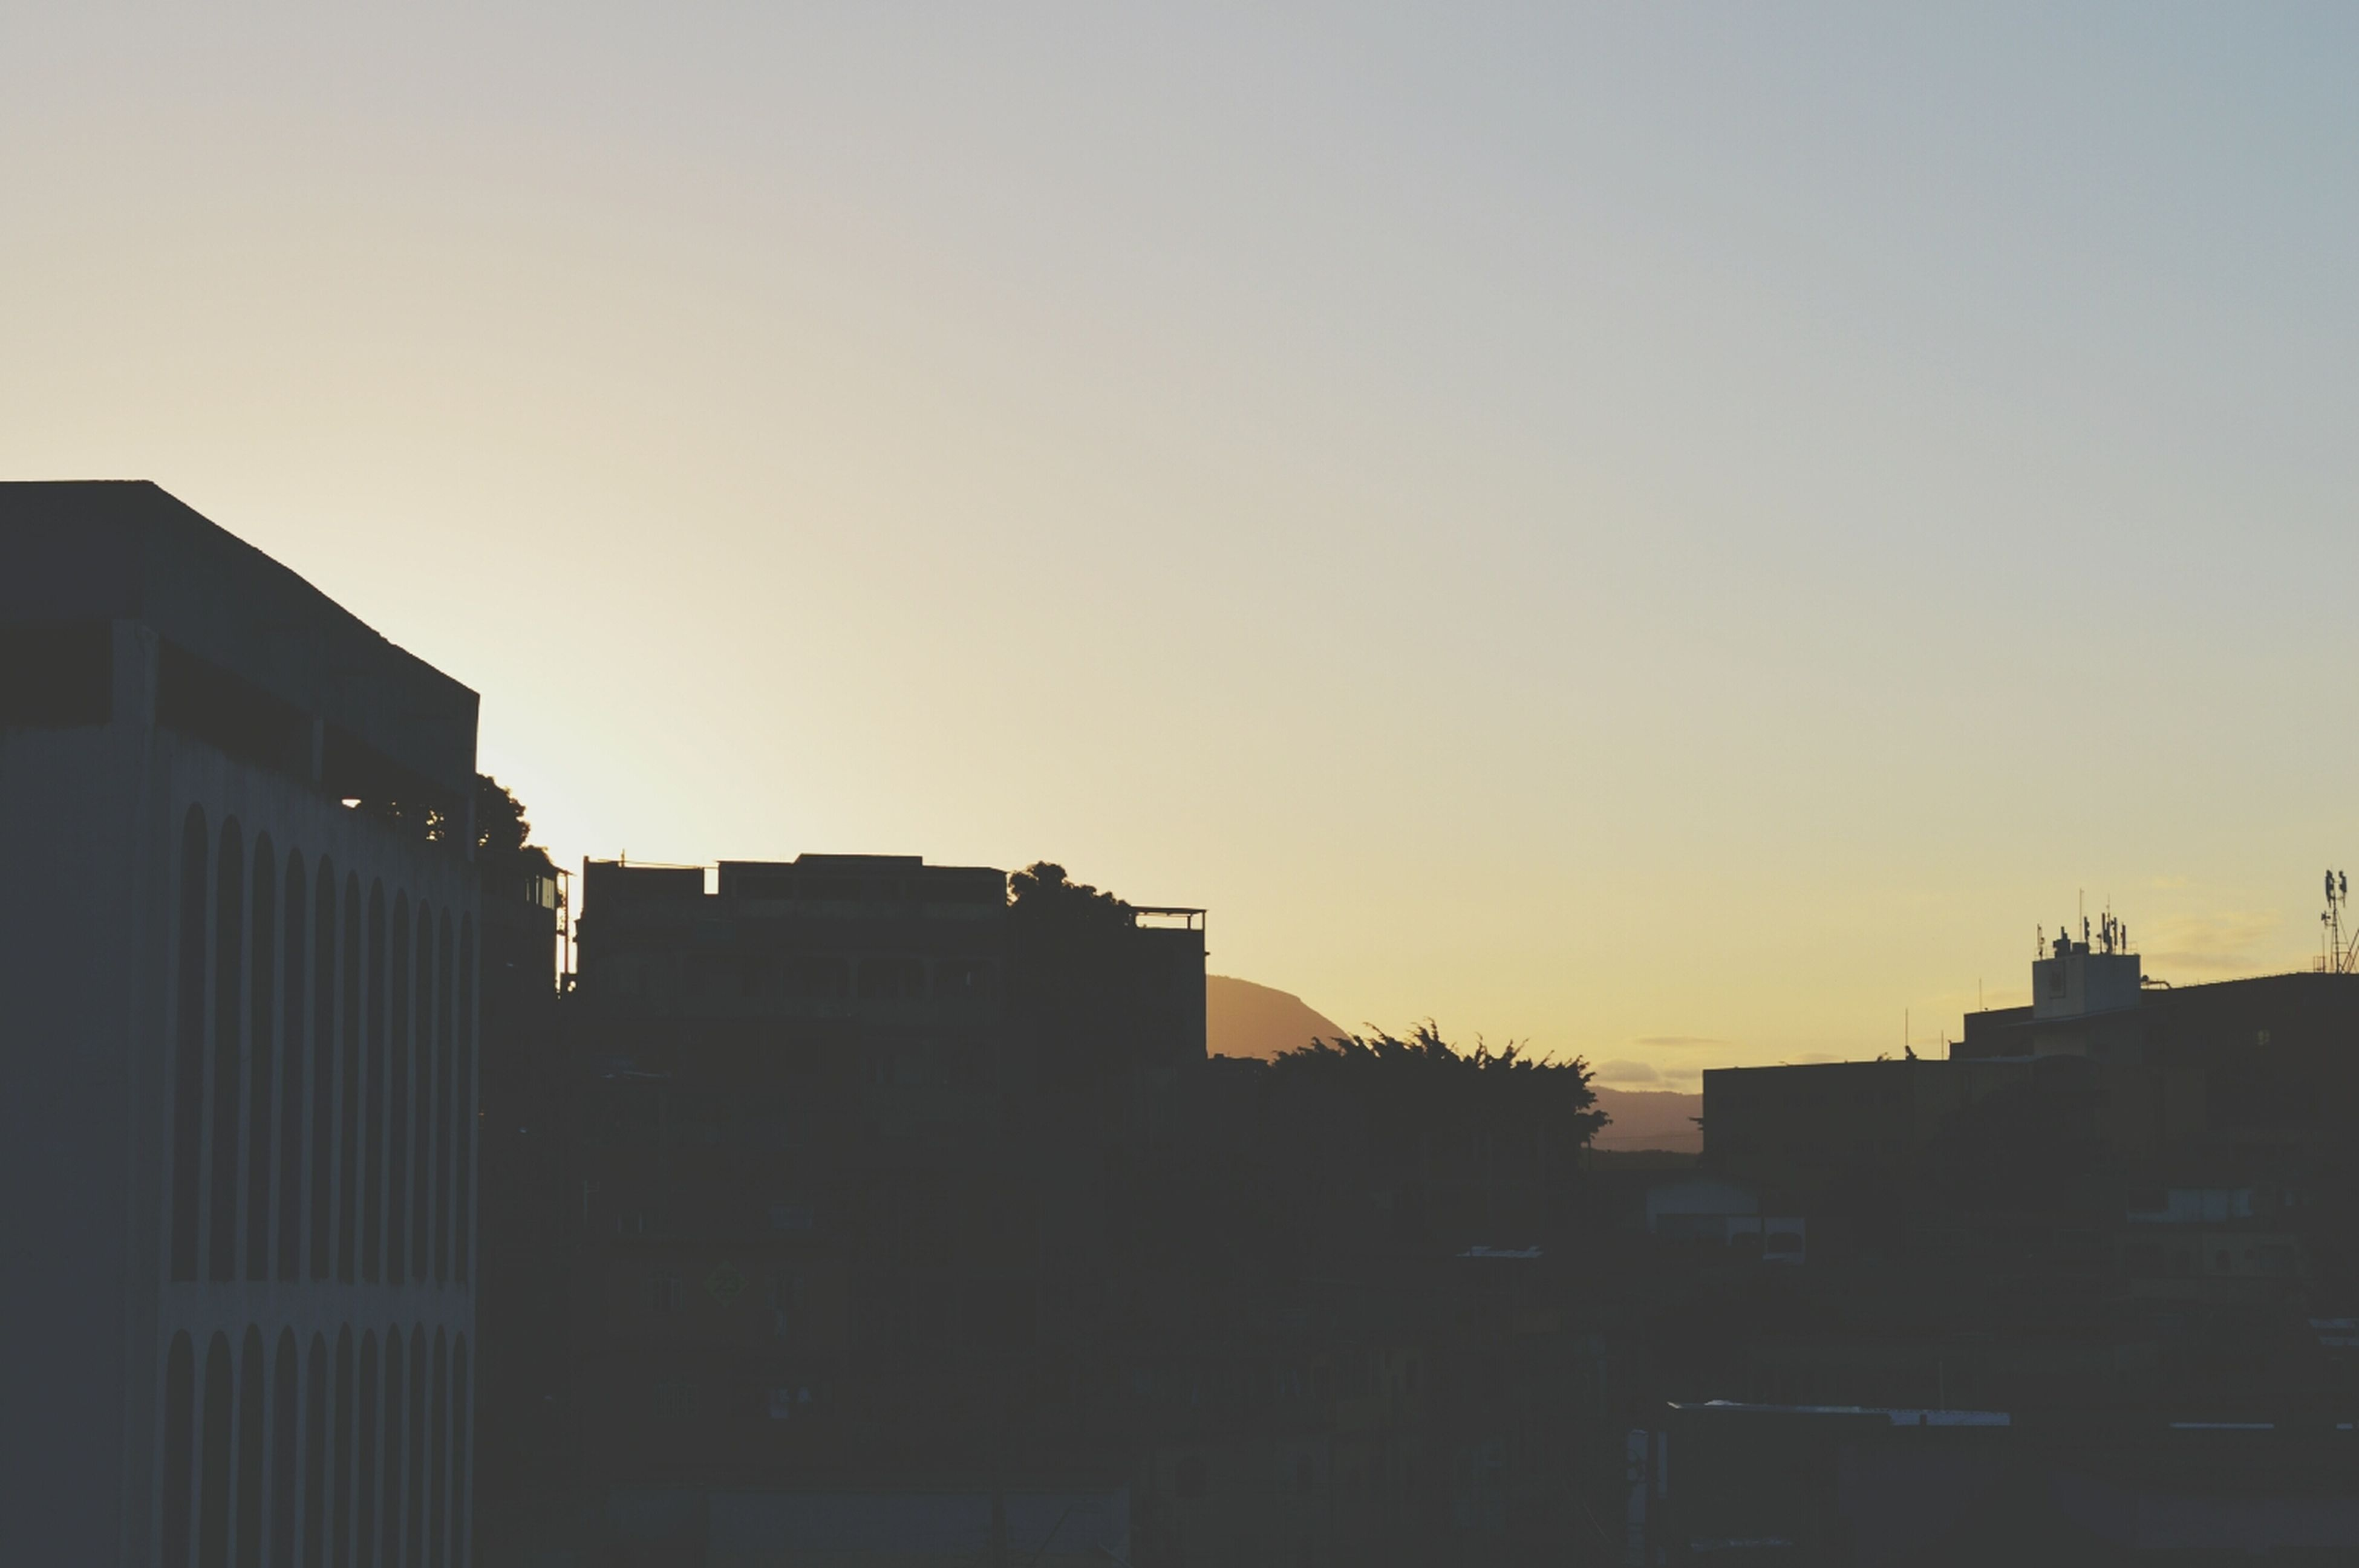 building exterior, architecture, built structure, clear sky, copy space, city, sunset, residential building, residential structure, building, low angle view, residential district, outdoors, house, silhouette, no people, city life, orange color, sky, dusk